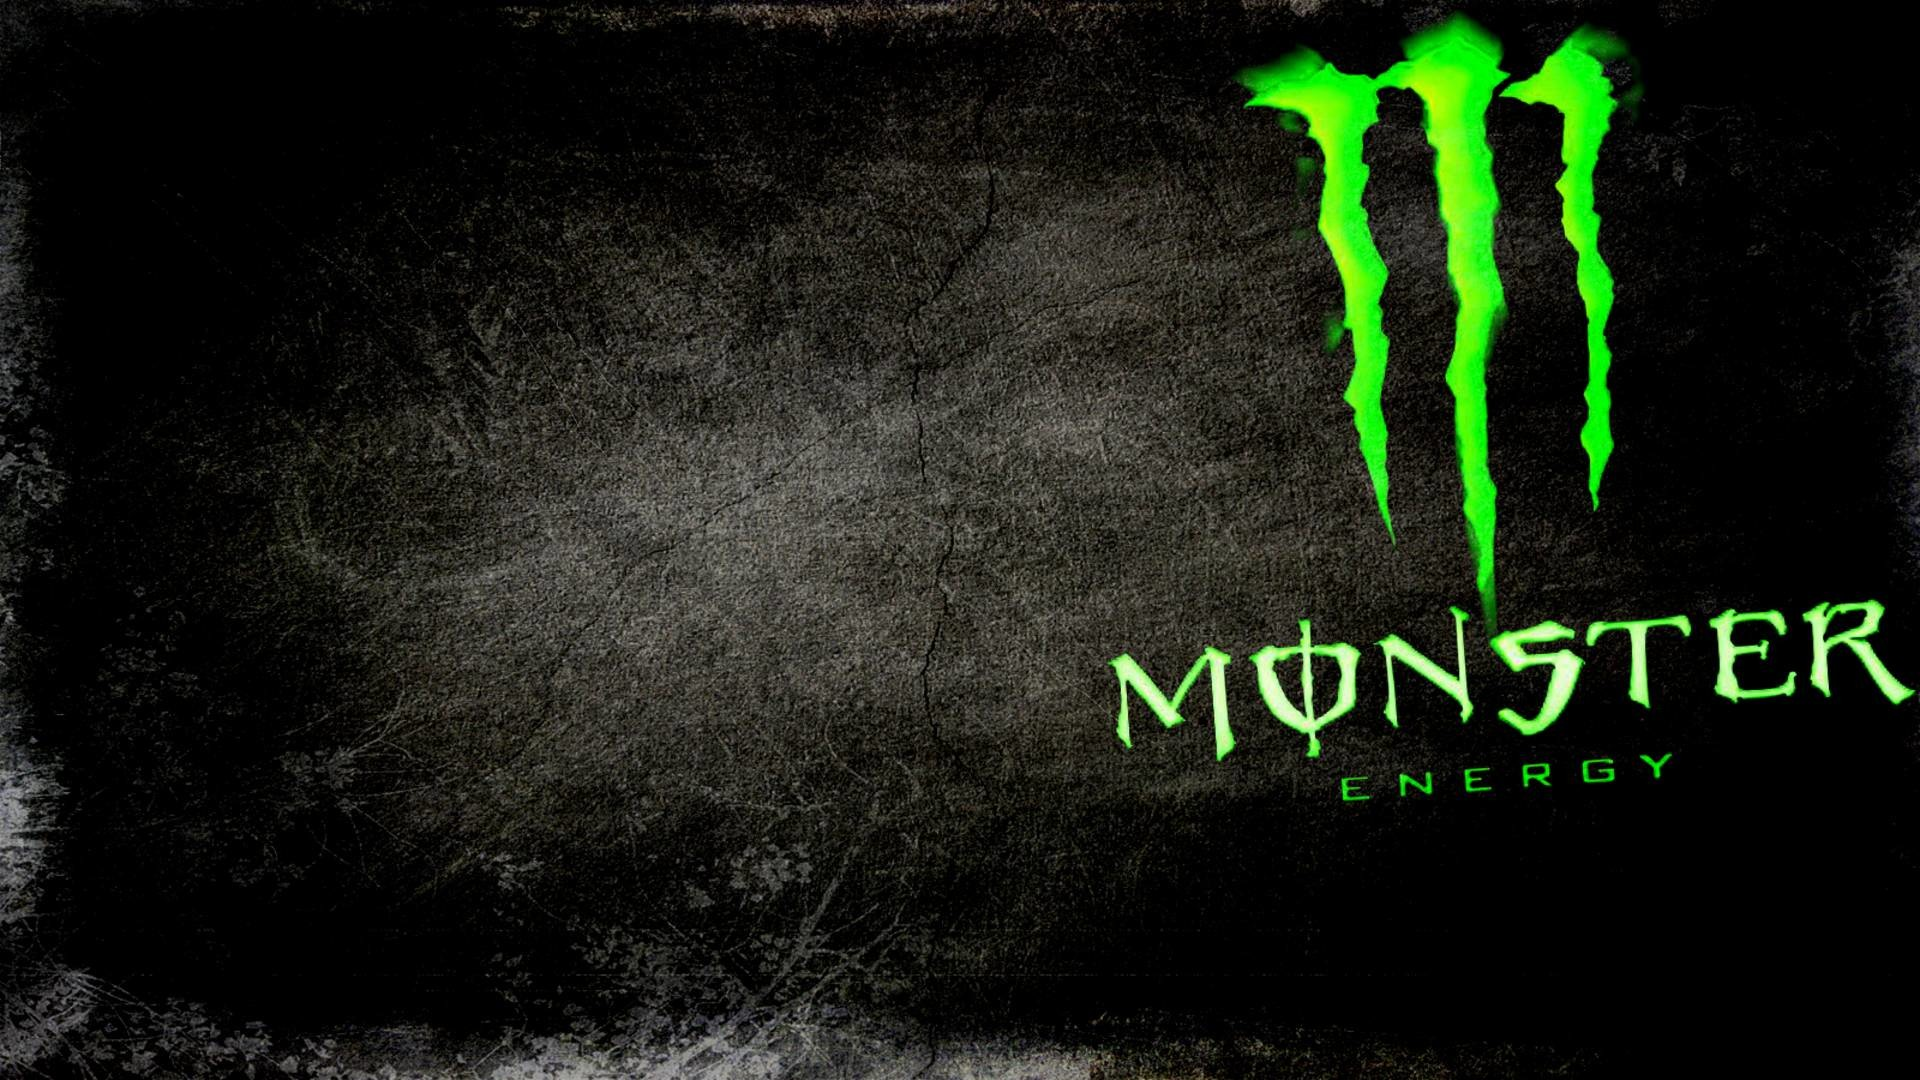 1920x1080 Monster Energy Wallpapers HD 2015 - Wallpaper Cave